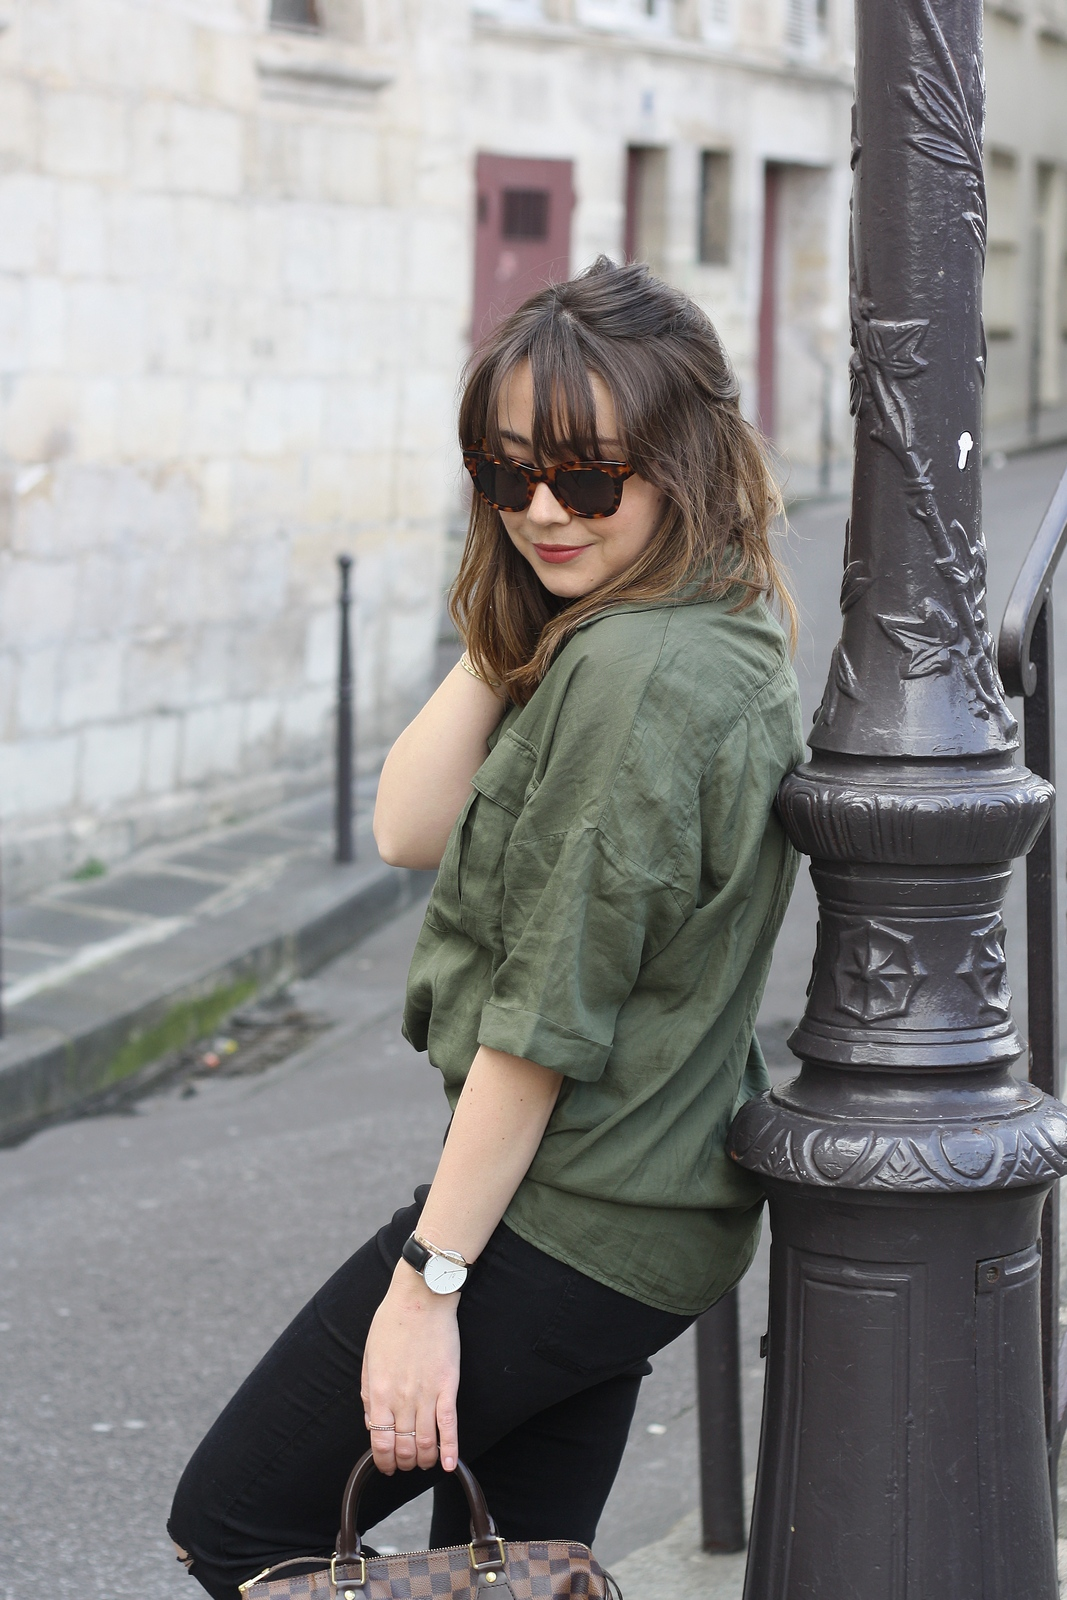 du style madame - blog mode - urban safari - stretstyle - look - tom's lunette